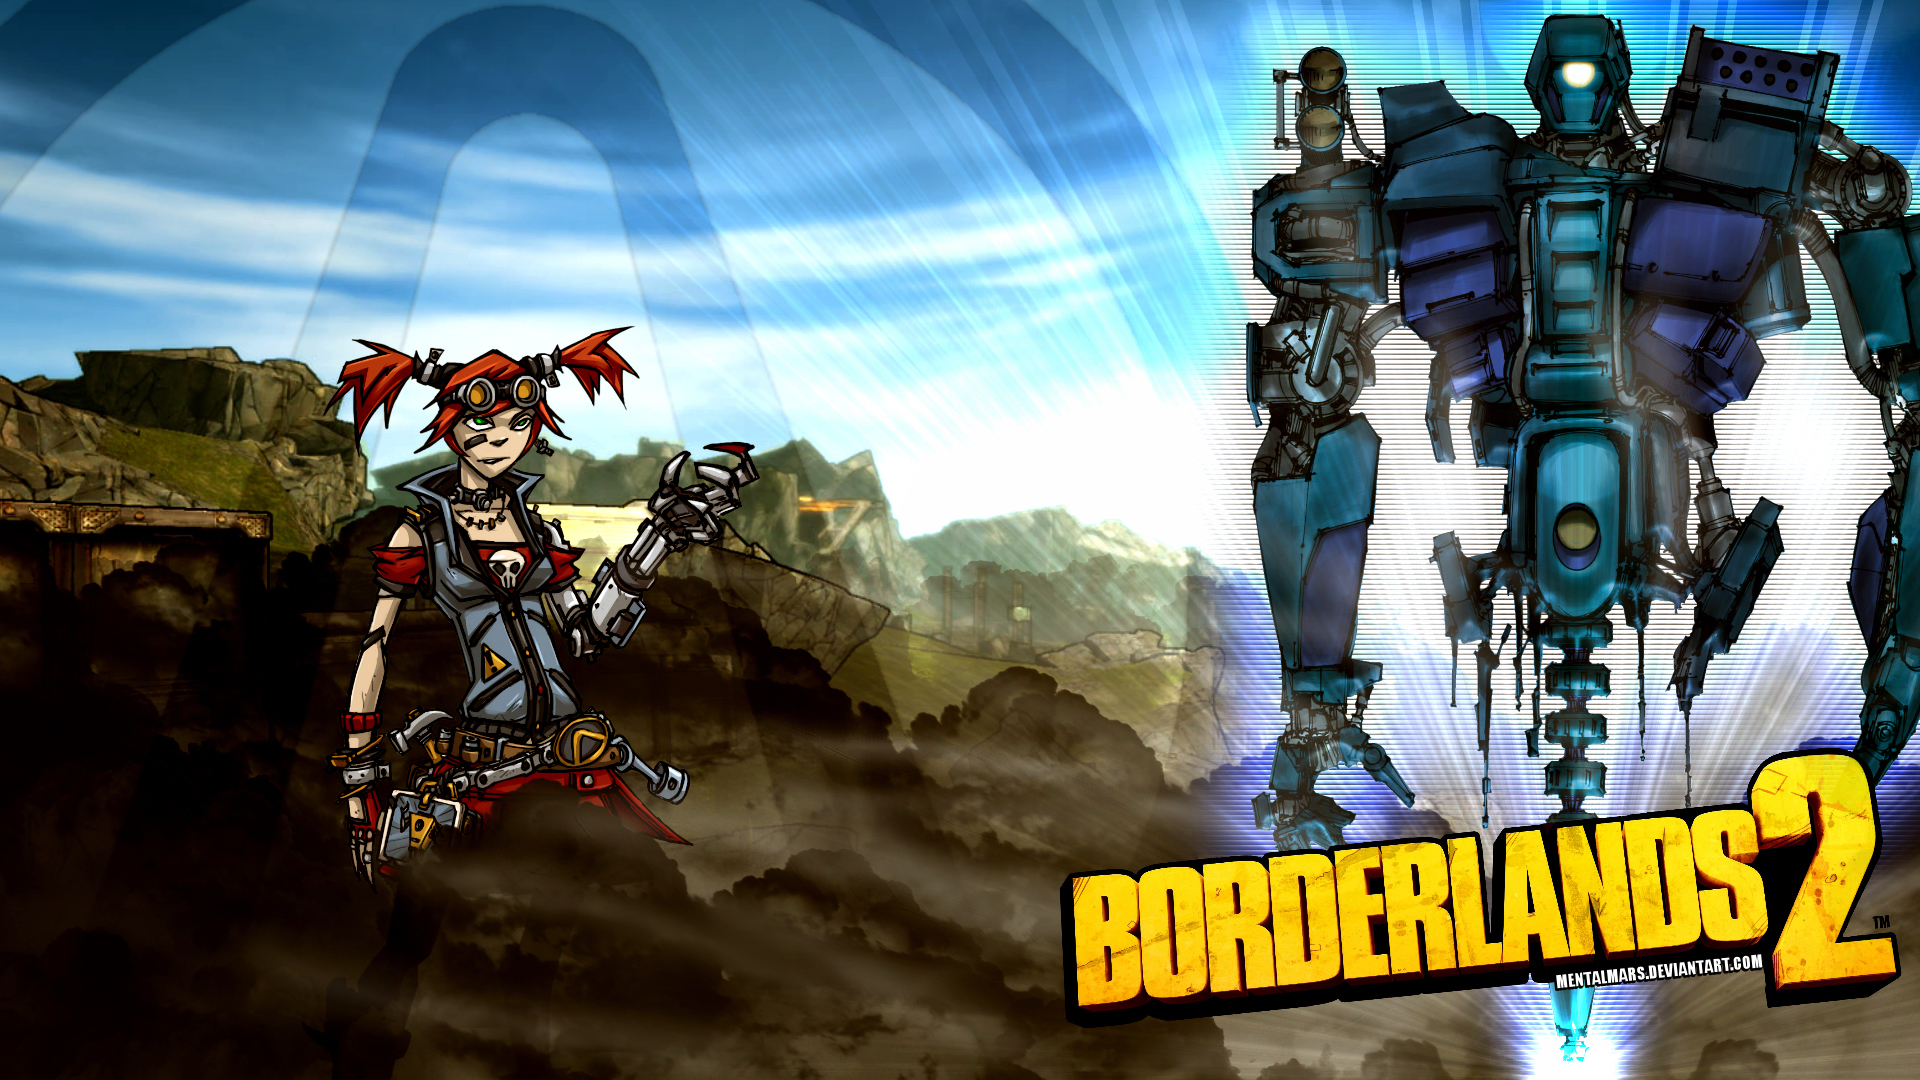 Borderlands 2 DLC Has Been Named